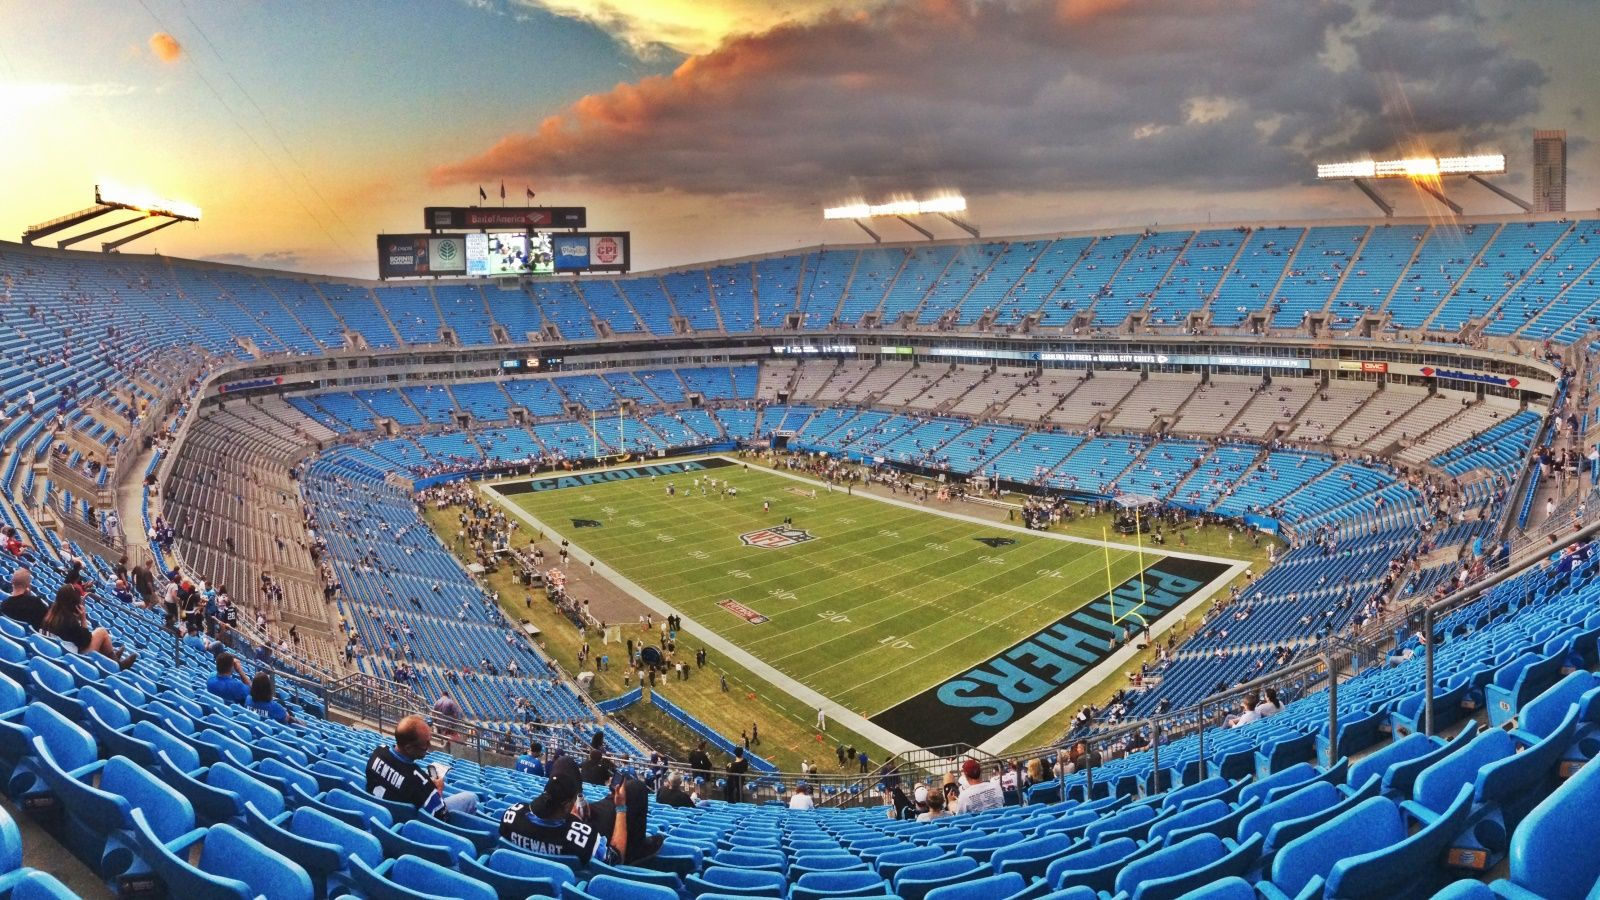 Charlotte Panthers Stadium | The Westin Charlotte